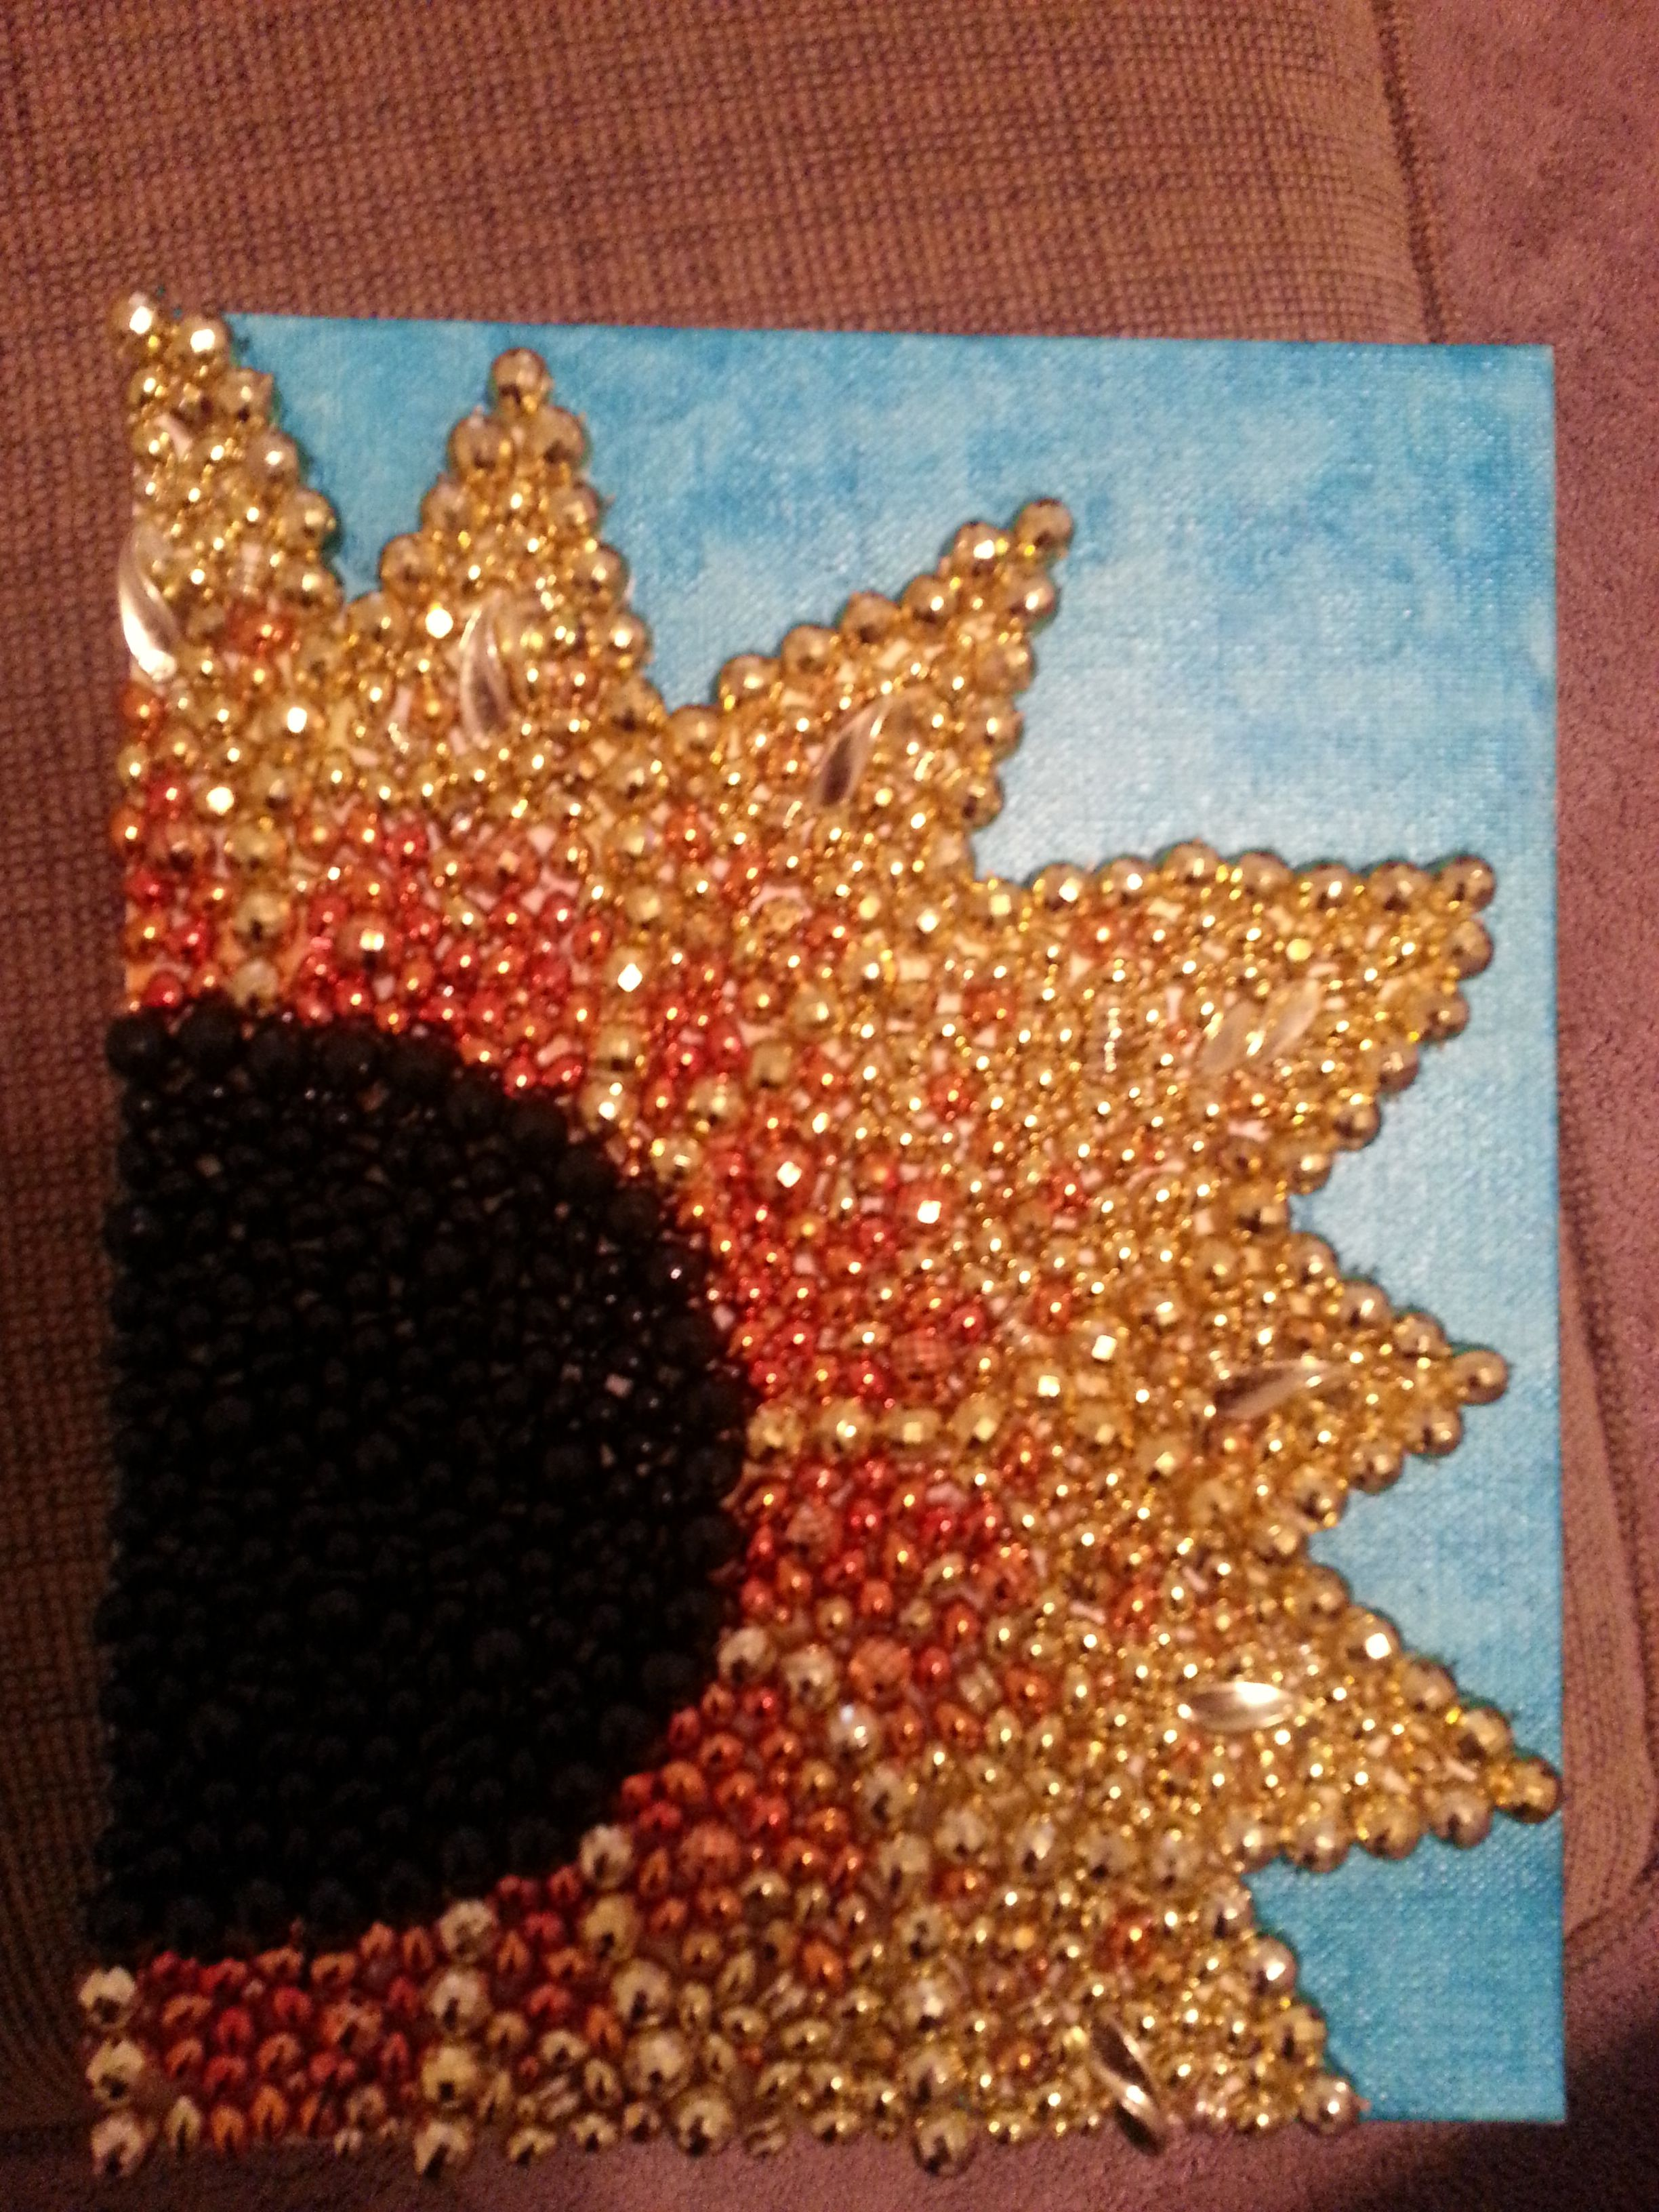 A Diy Sunflower Canvas Made With Paint And Plastic Mardi